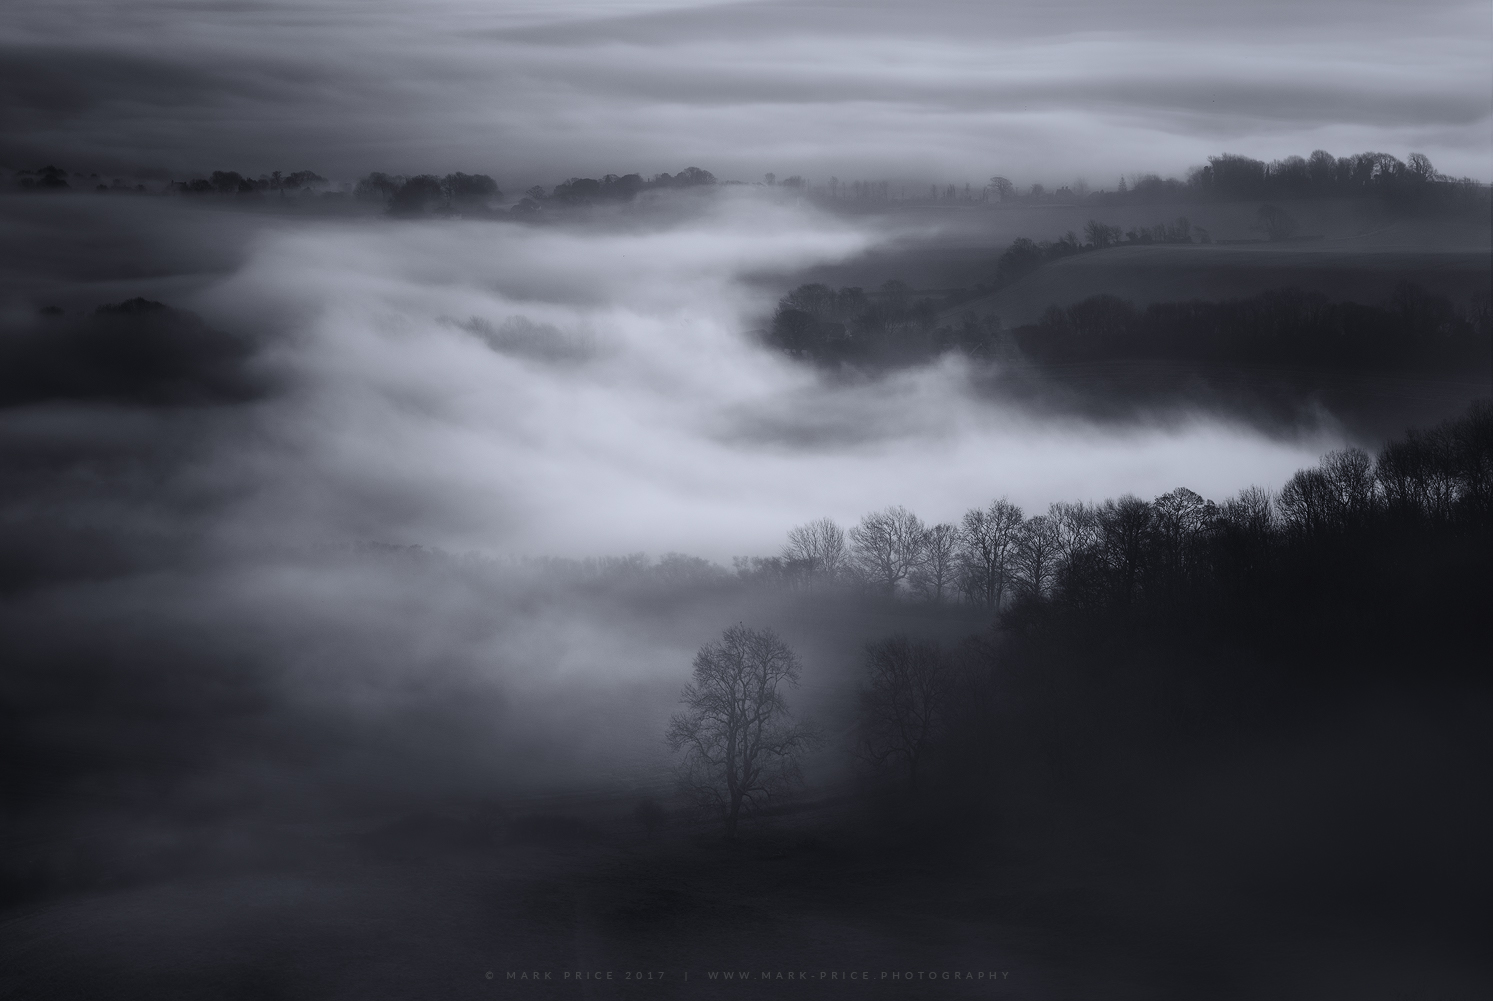 Thick morning mist covering East Sussex, by Mark Price Photography